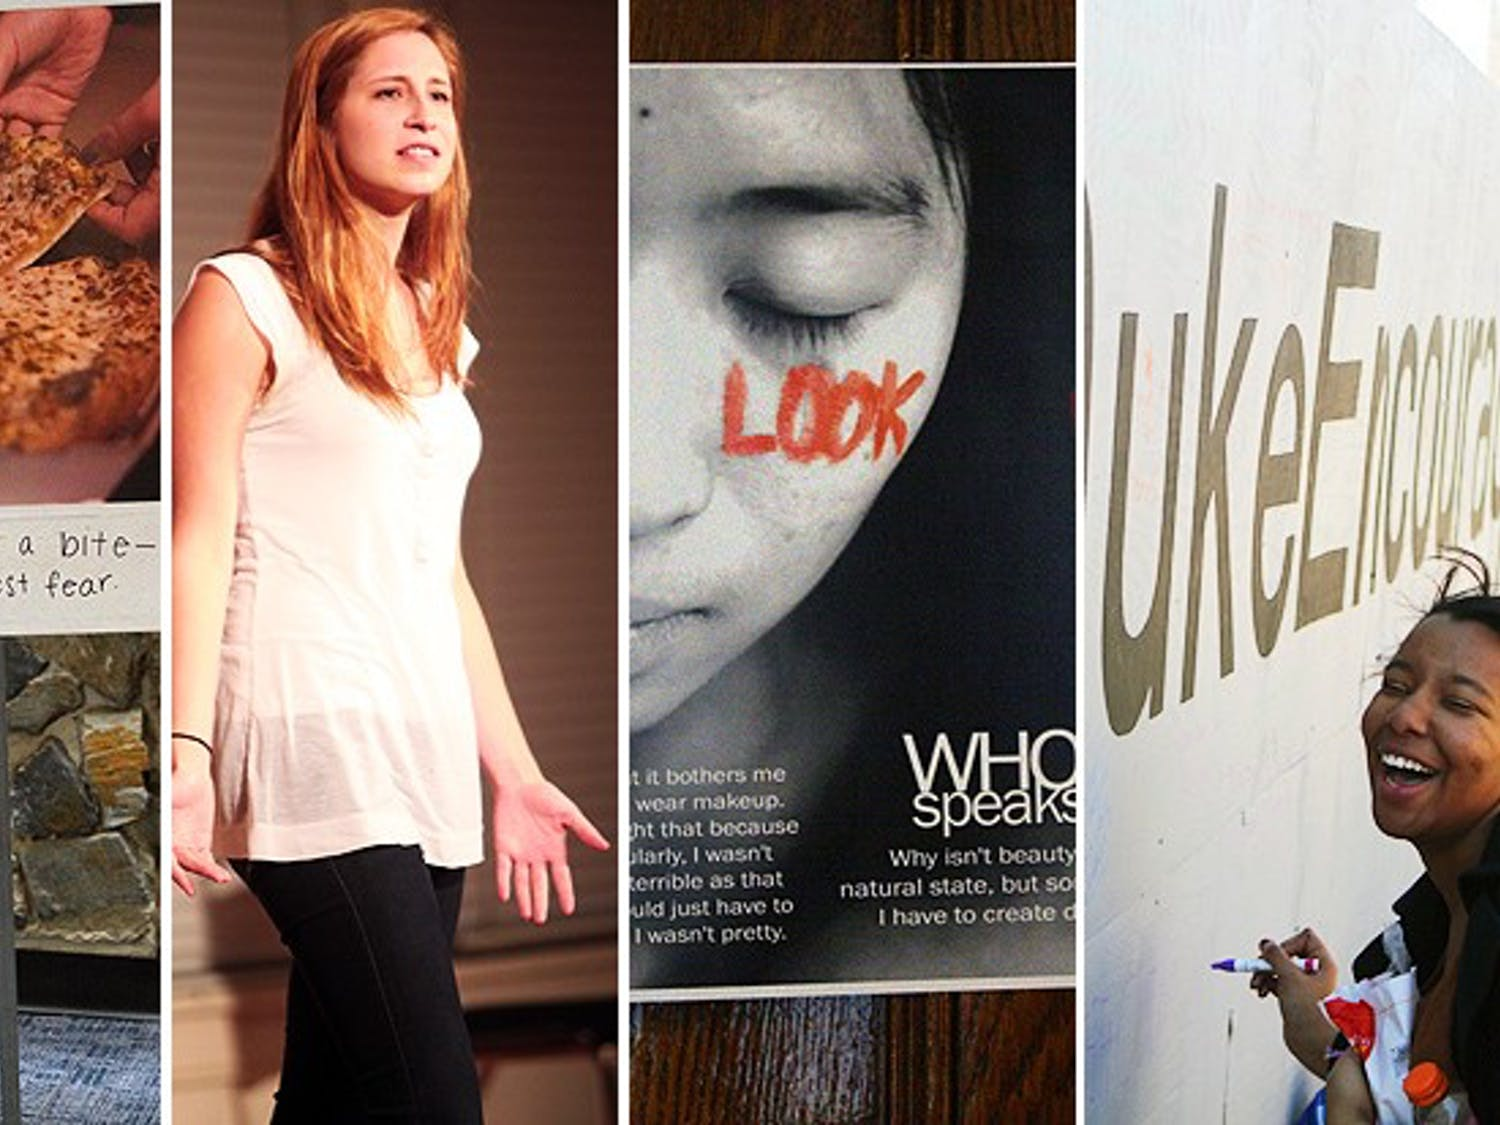 Duke has recently seen the emergence of several campaigns targeted at empowering students, such as (left to right):  National Eating Disorder Awareness Week, Me Too Monologues, #DukeEncourage and WHO Speaks.